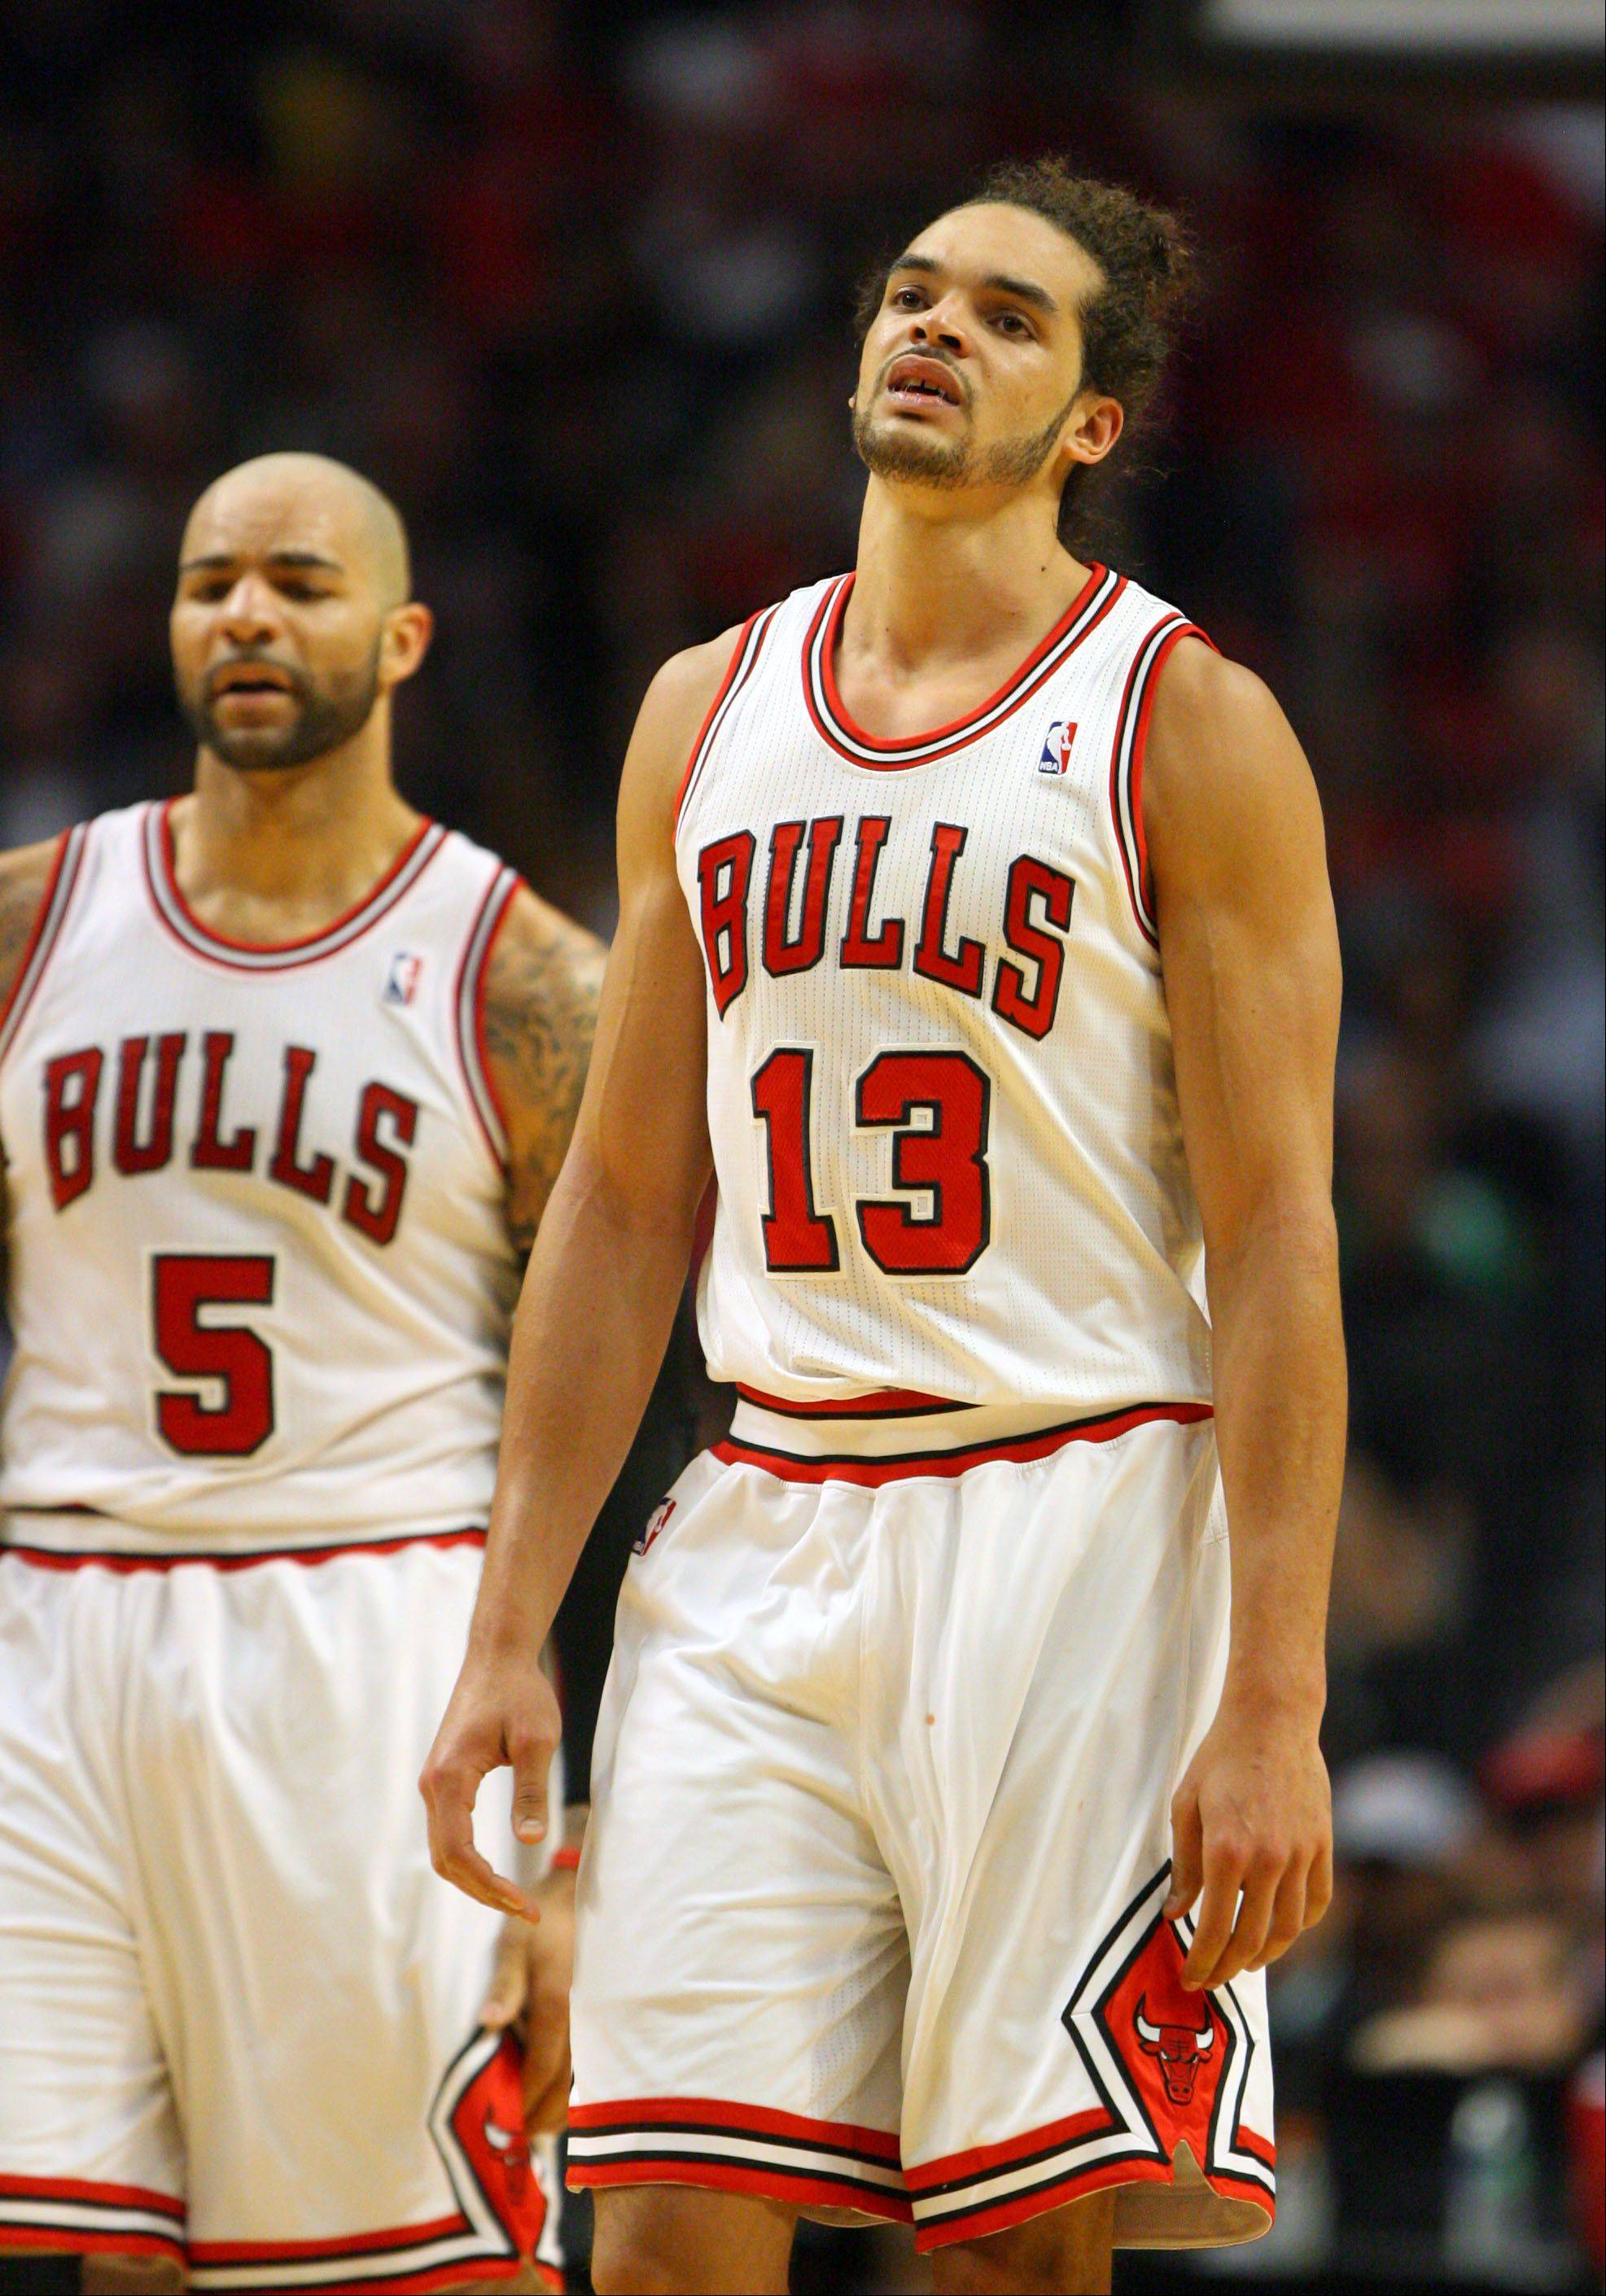 Joakim Noah wants �to be out there real bad� tonight in the Bulls� preseason opener, but the team is being cautious because Noah strained a groin in practice earlier this week.